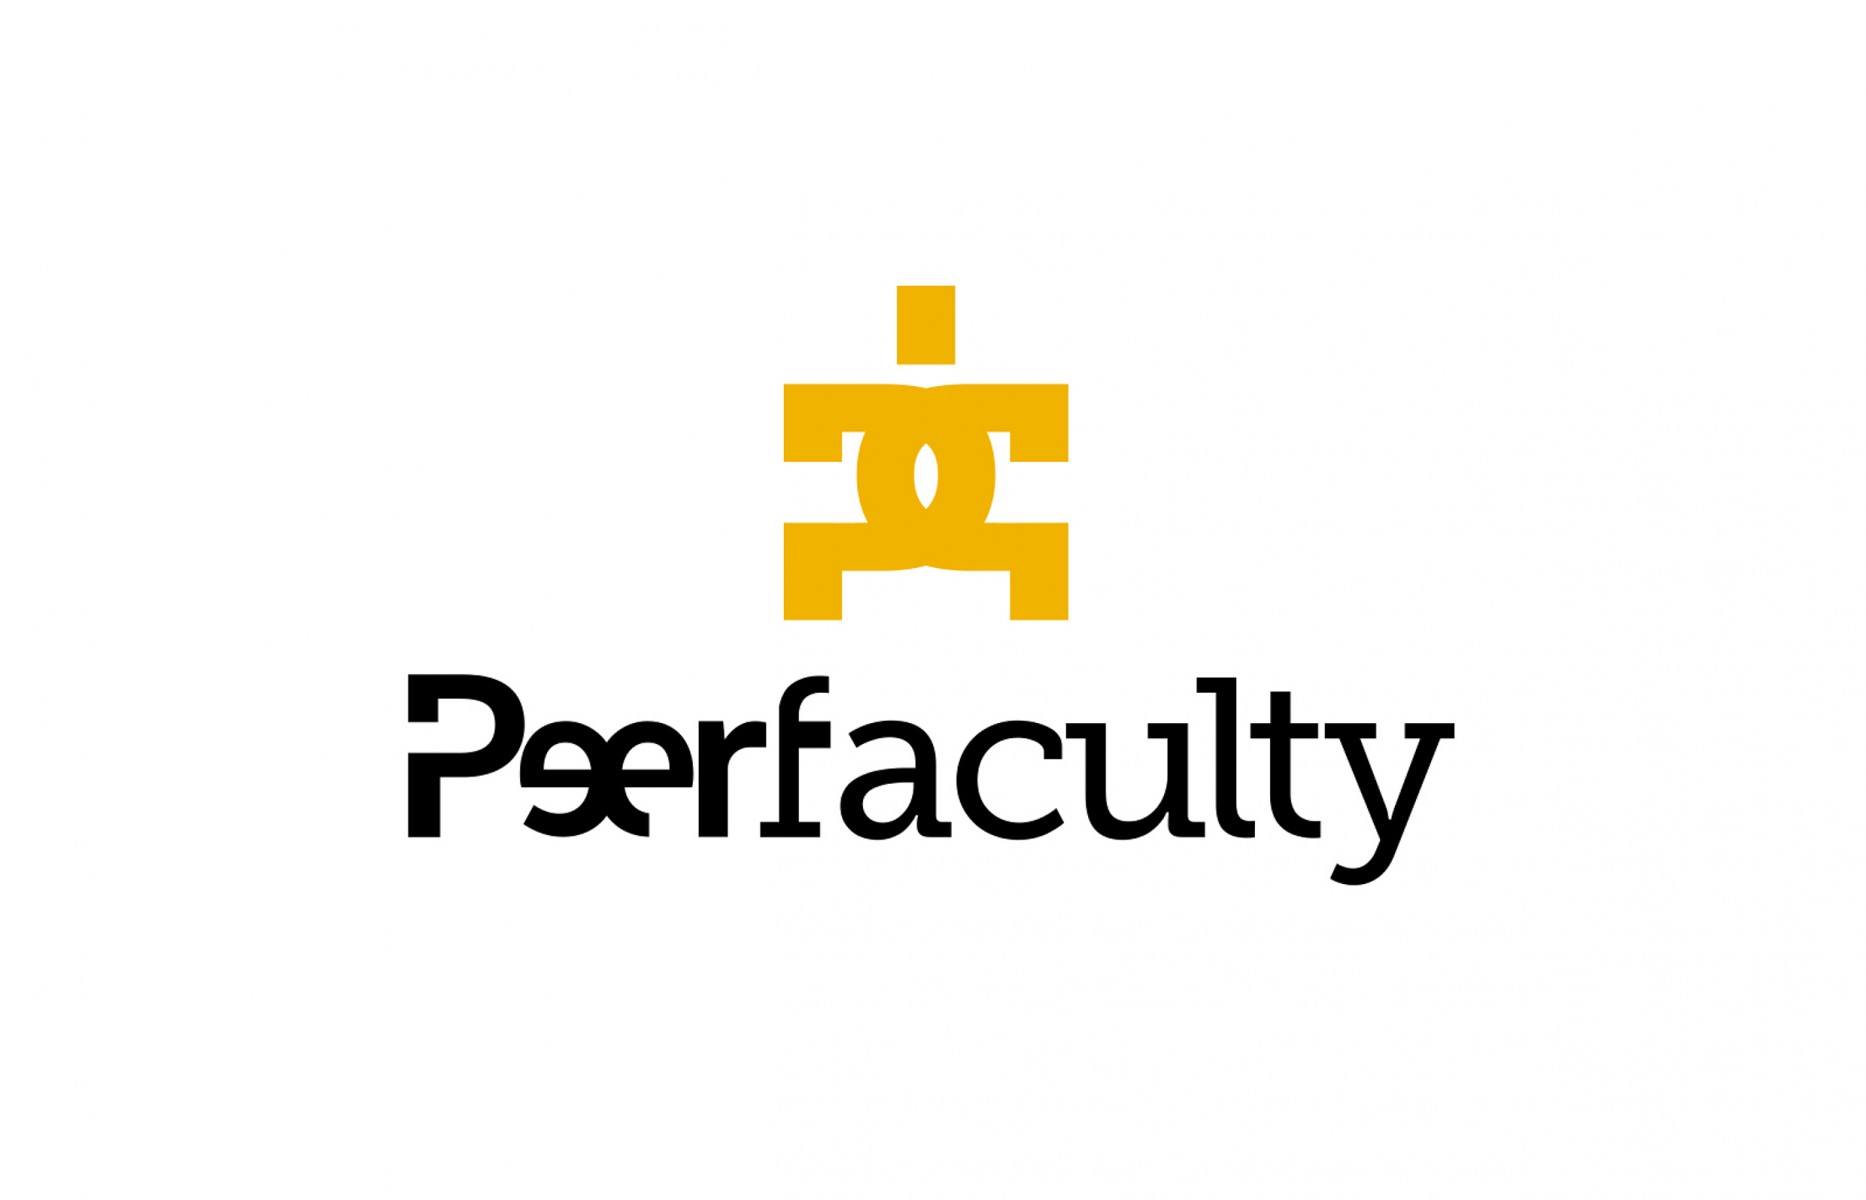 Peerfaculty logo